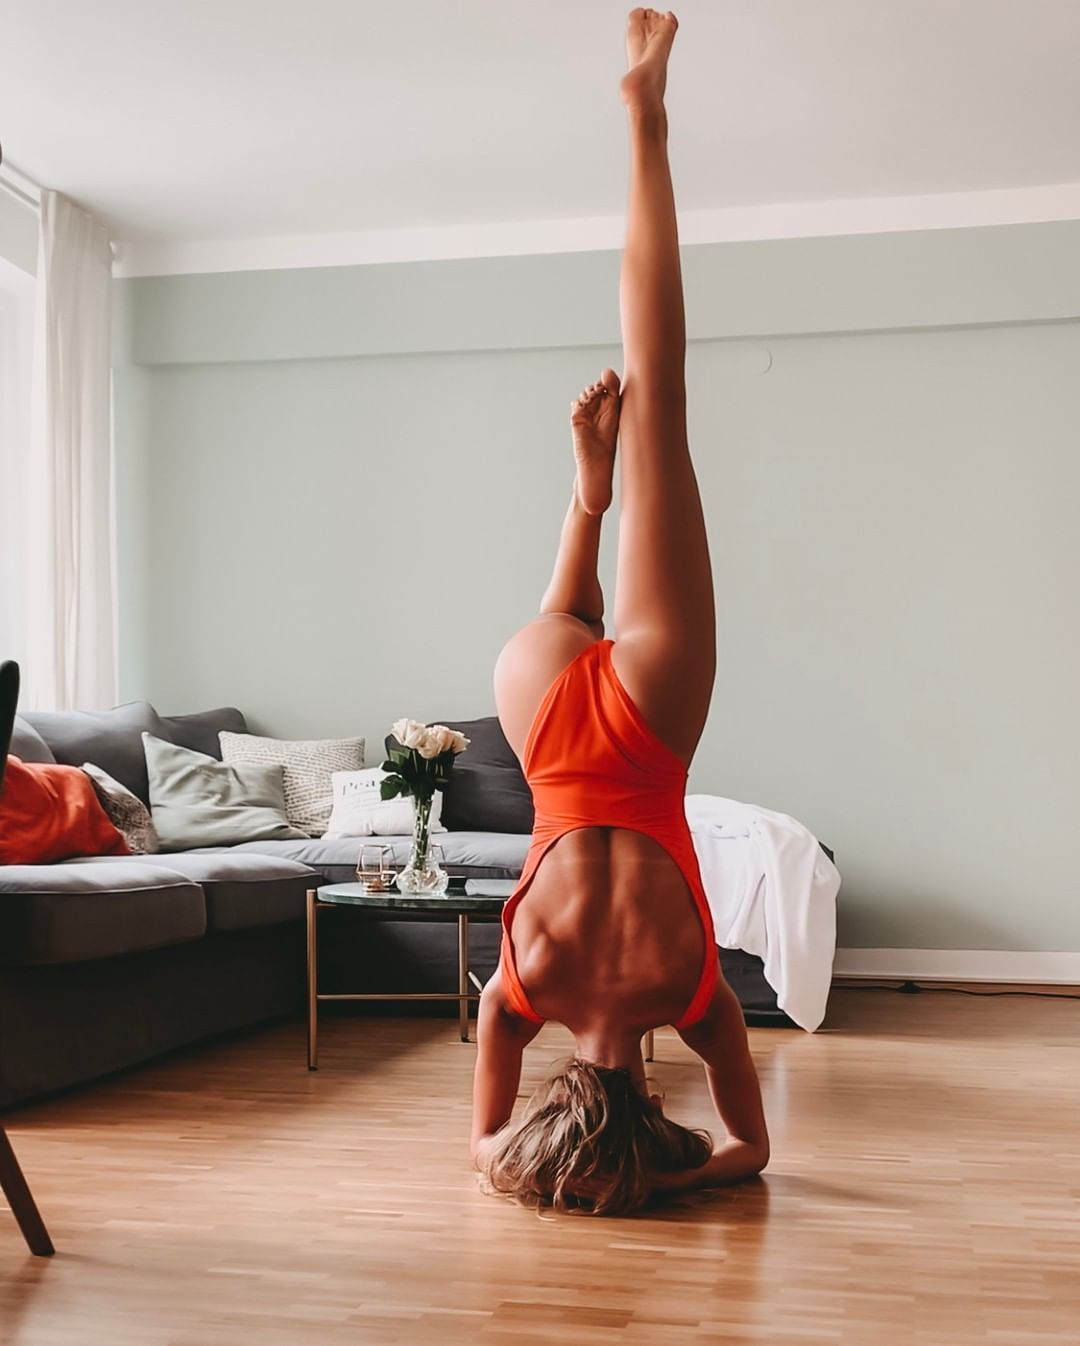 Wherever Your Wild Thoughts Go Is Where Your Heart Is Home Yoga Headstand Sirsasana Motivation Happy Home Mun Cozy House Maisons Du Monde Head Stand